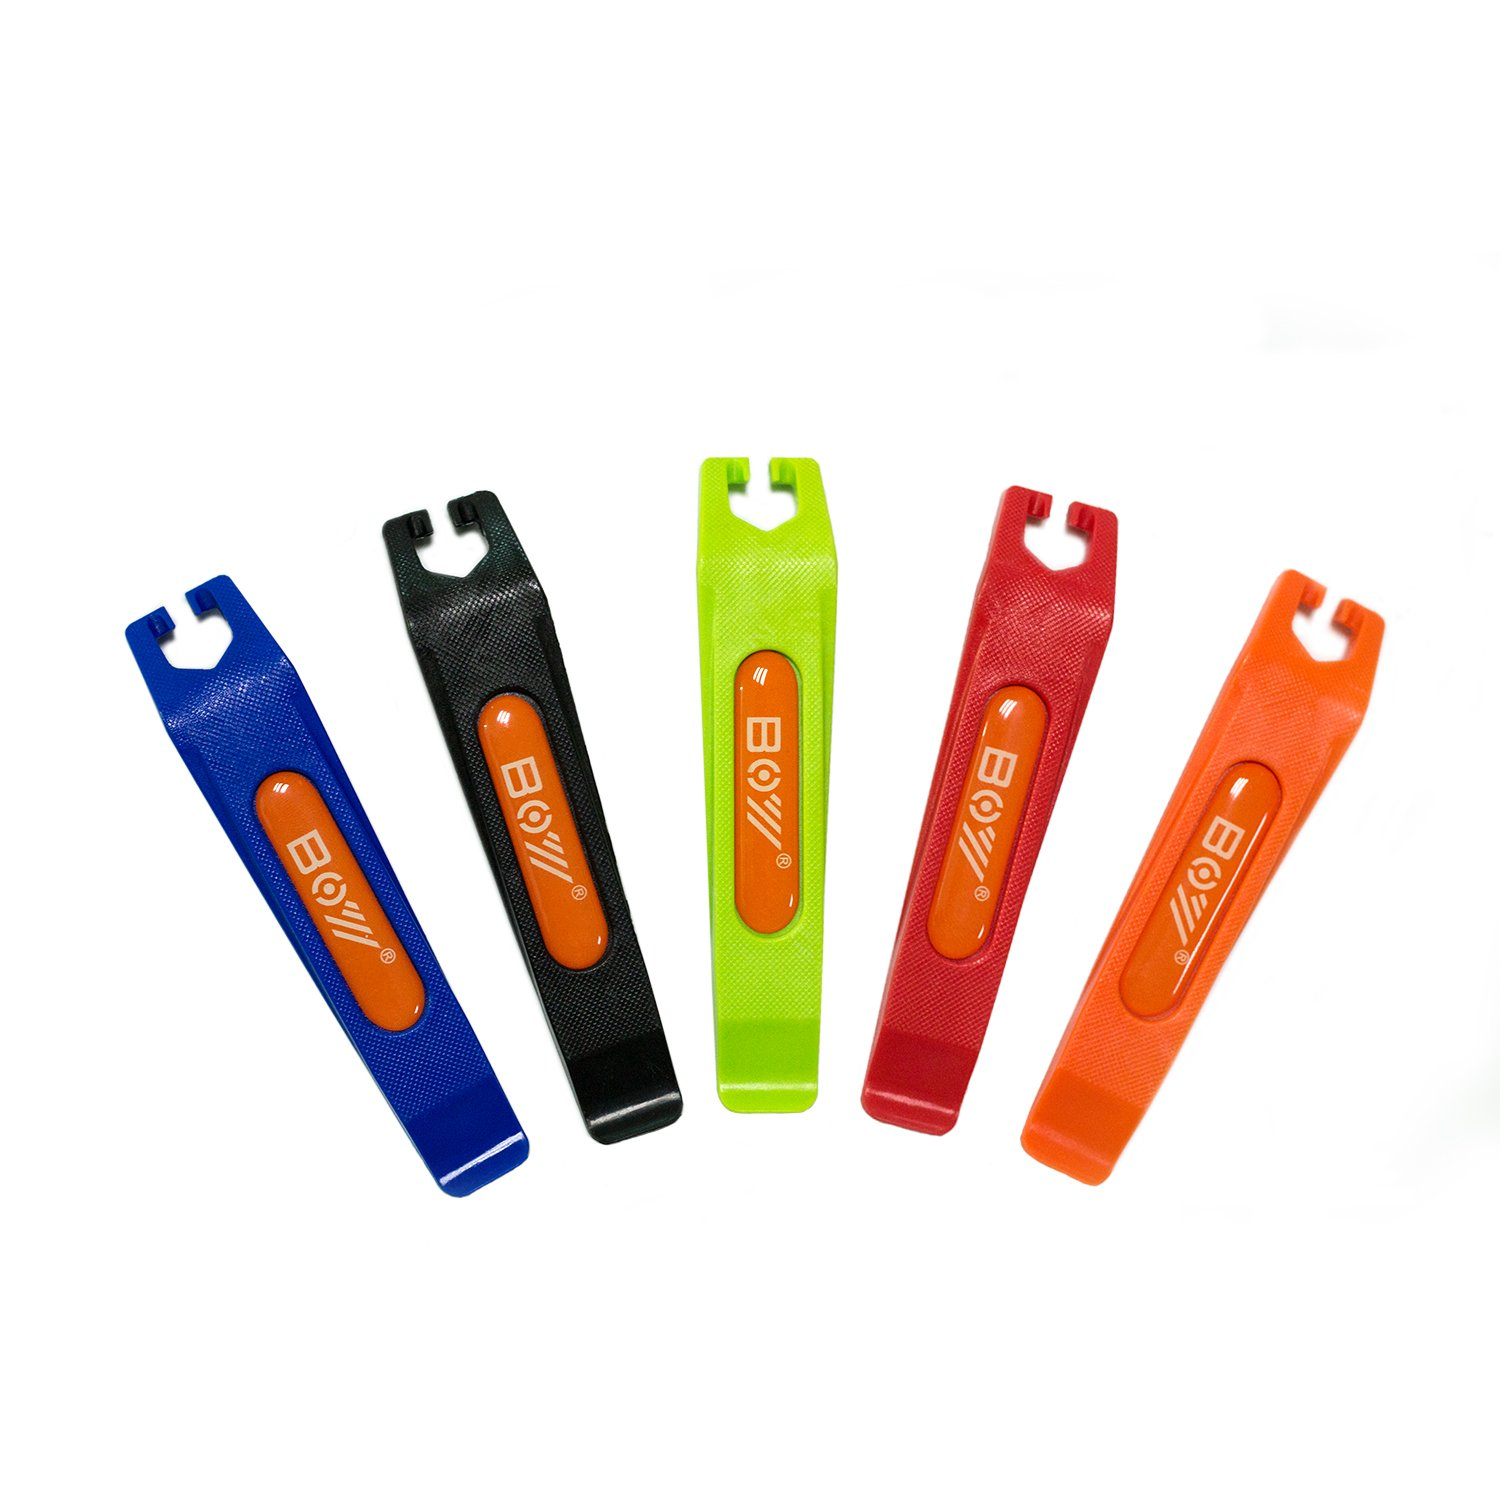 Owfvlazi Bike Tire Lever Tools Set of 5 Color Tire Levers by Owfvlazi (Image #1)